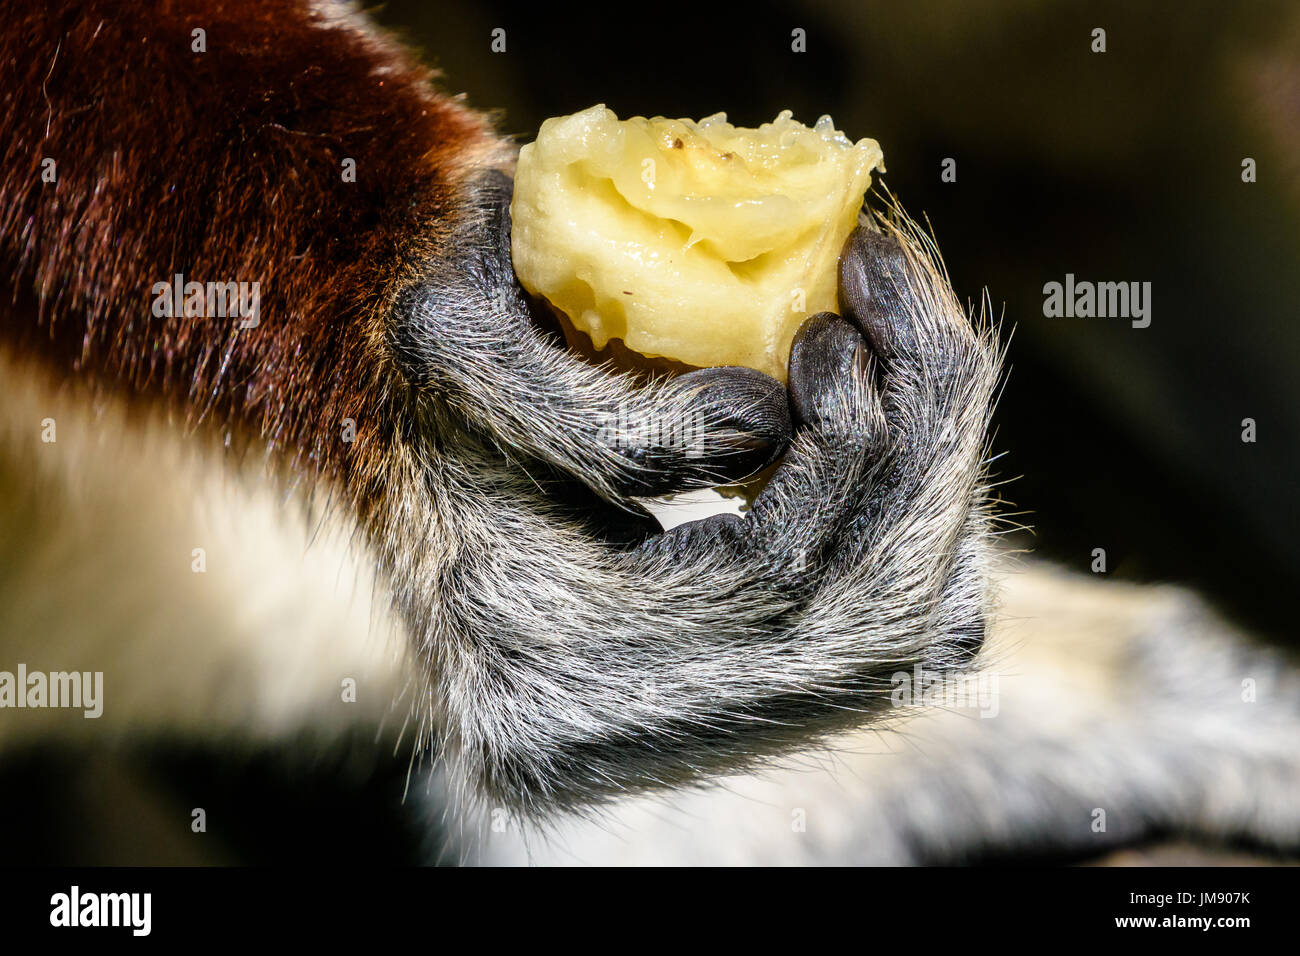 Close up of Sifaka lemur hand with banana - Stock Image